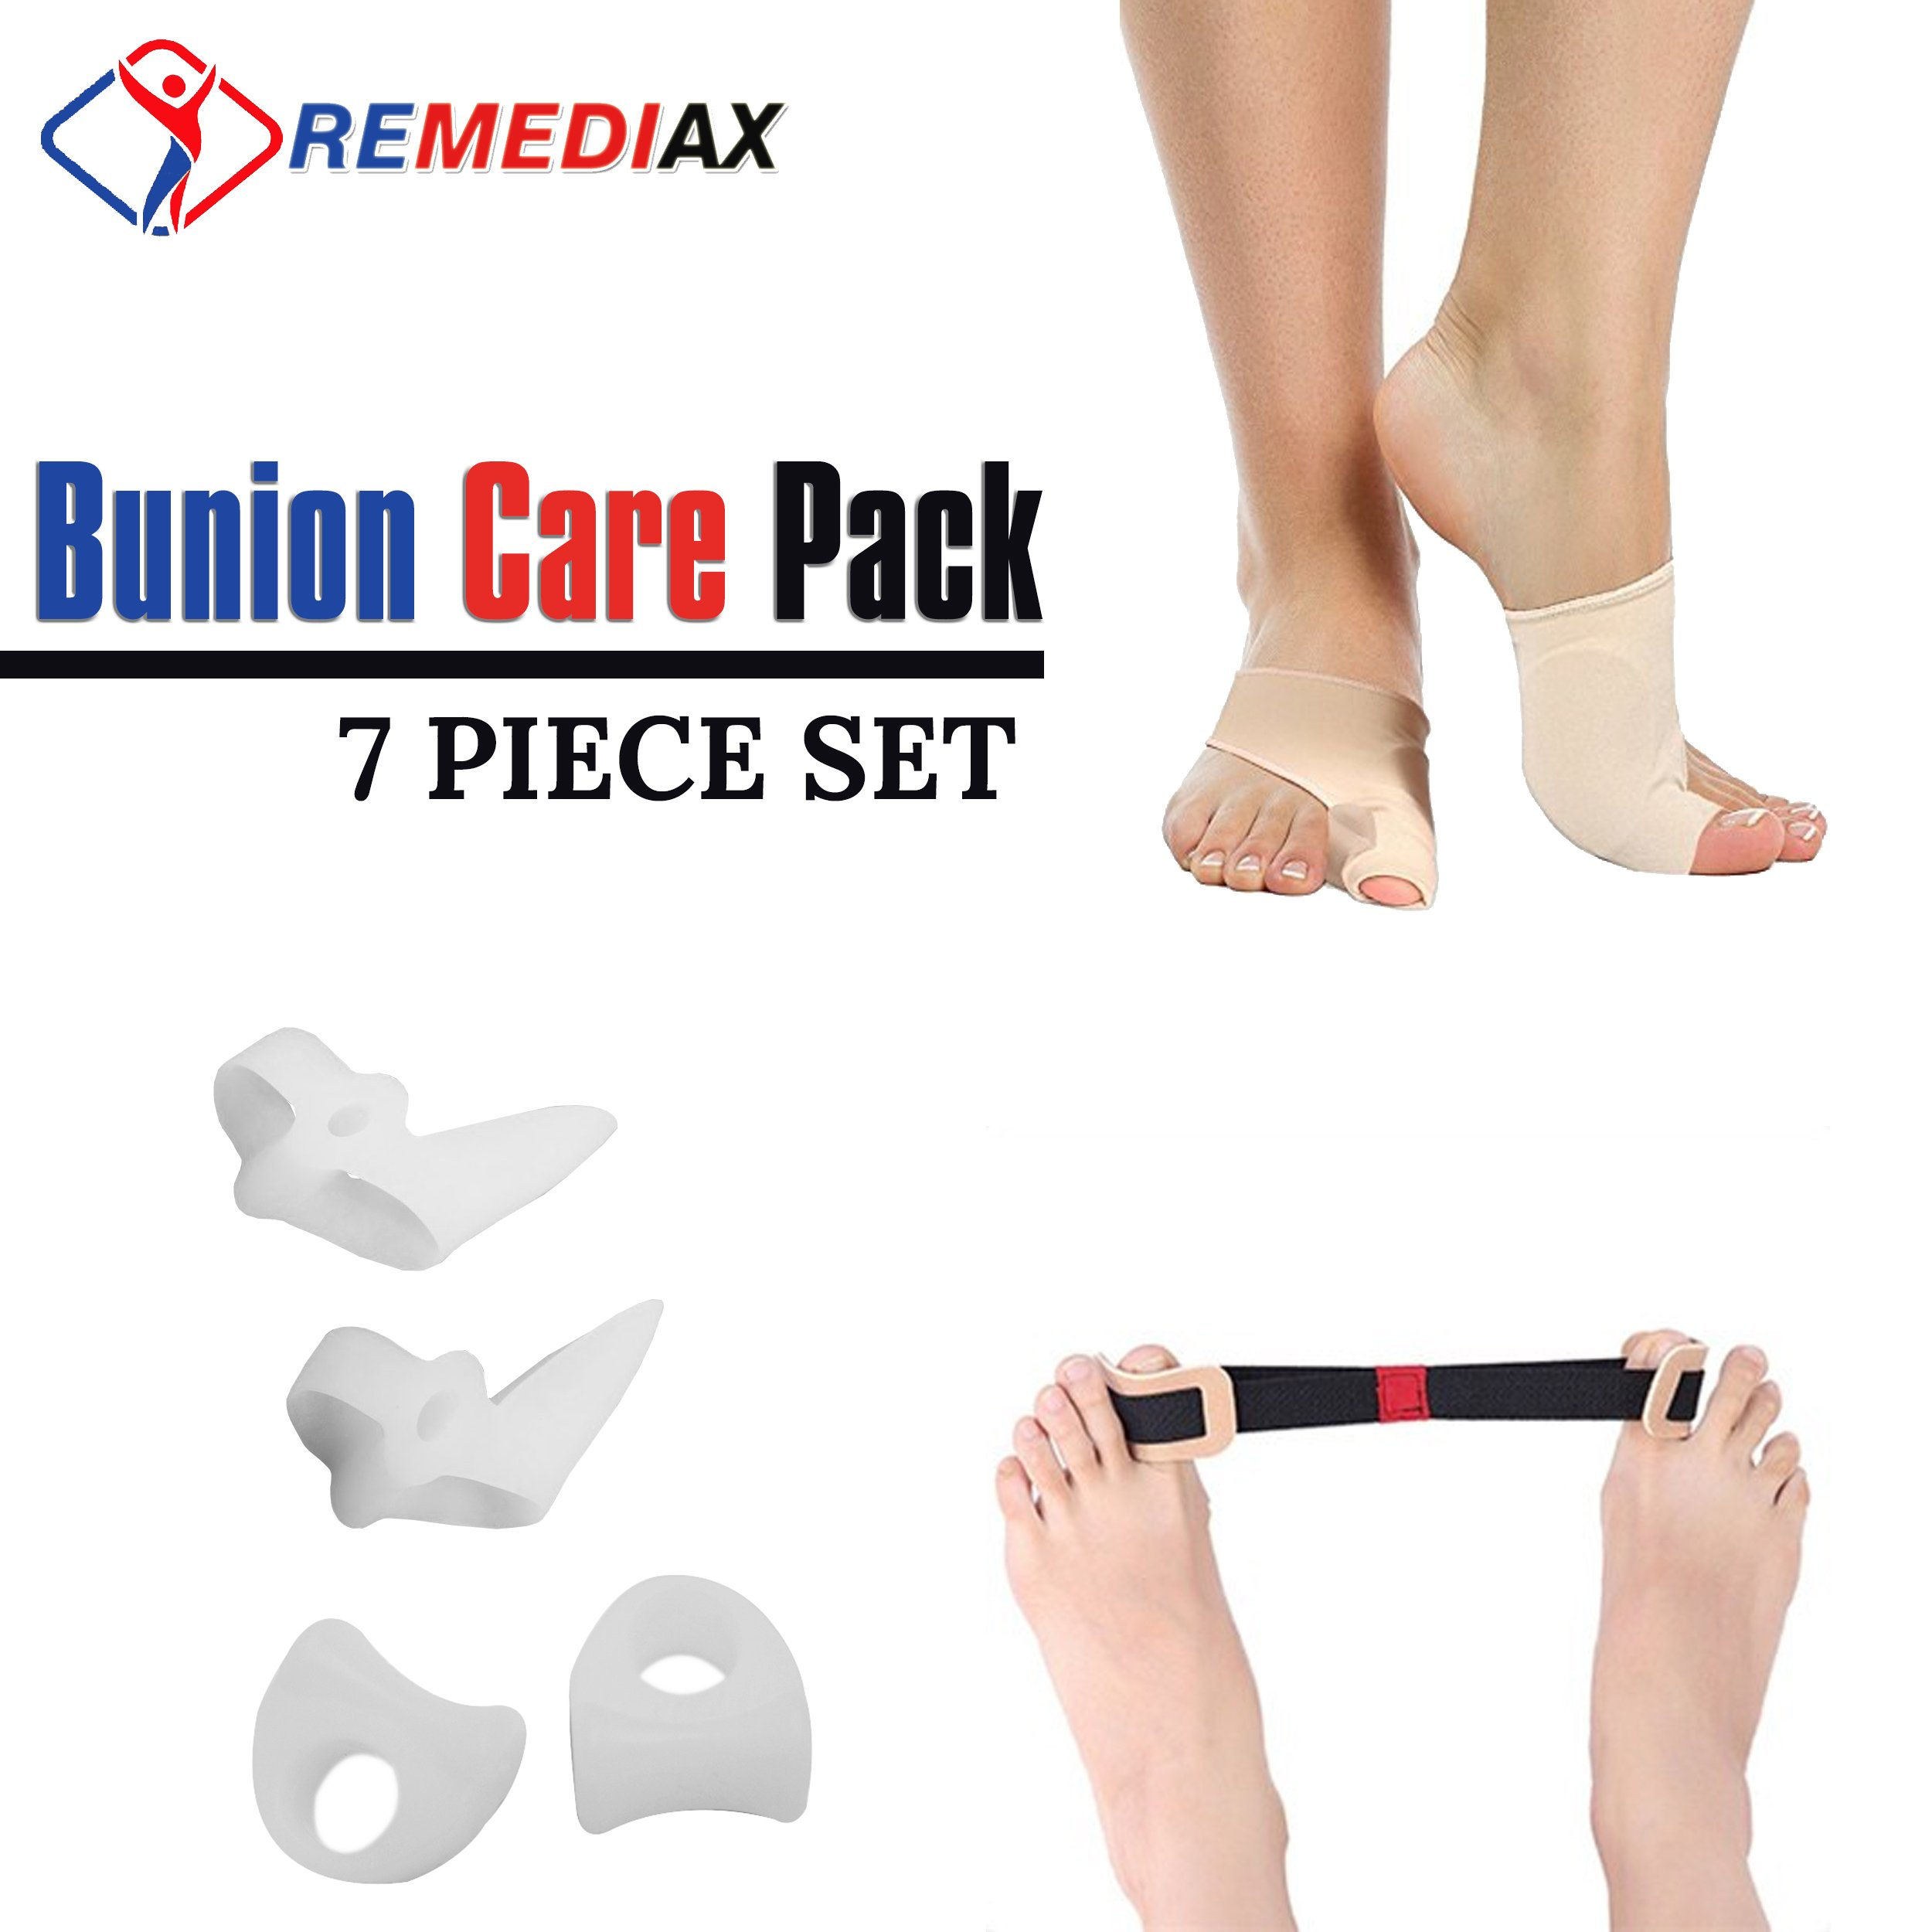 Remediax Bunion Corrector & Bunion Relief Protector Sleeves Kit - Foot Pain Relief, Big Toe Joint, Hammer Toe, Toe Separators Spacers Straighteners Splint Aid Surgery Treatment, Cushioned Sleeve